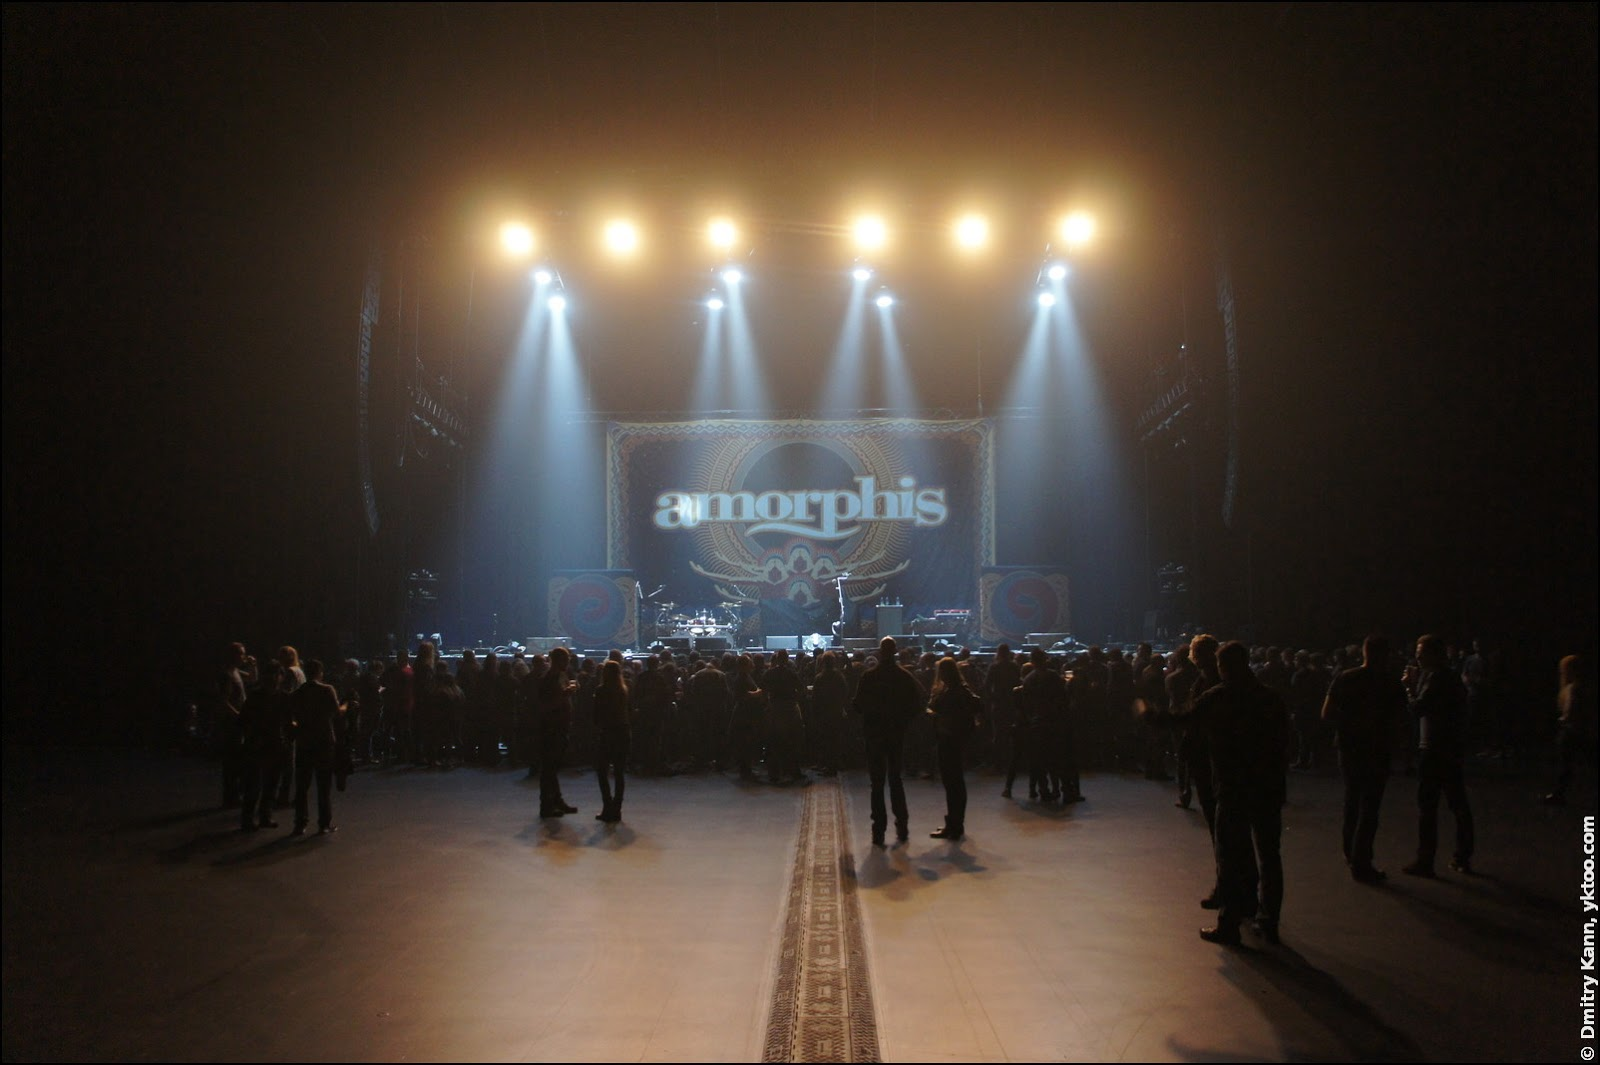 The stage before Amorphis.